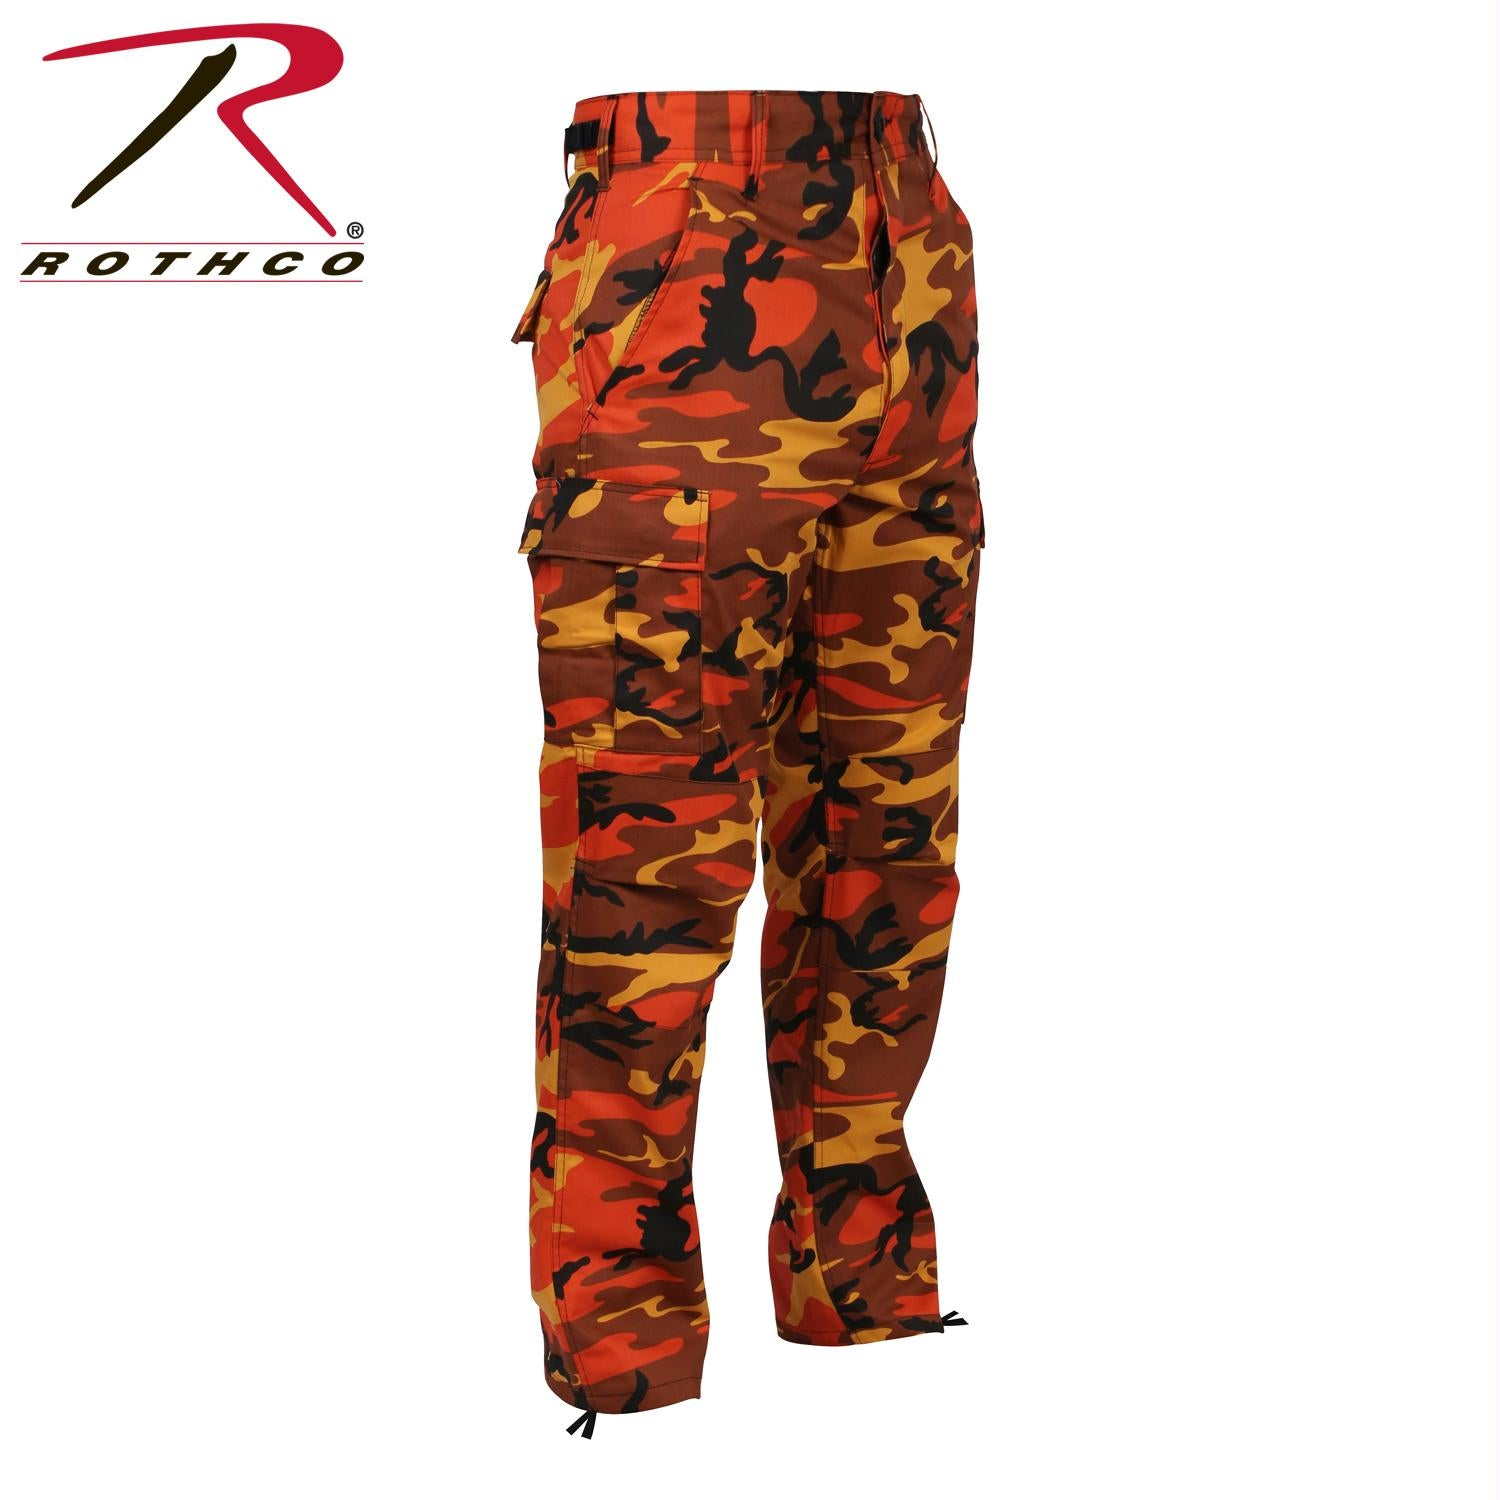 Rothco Color Camo Tactical BDU Pant - Savage Orange Camo / 2XL